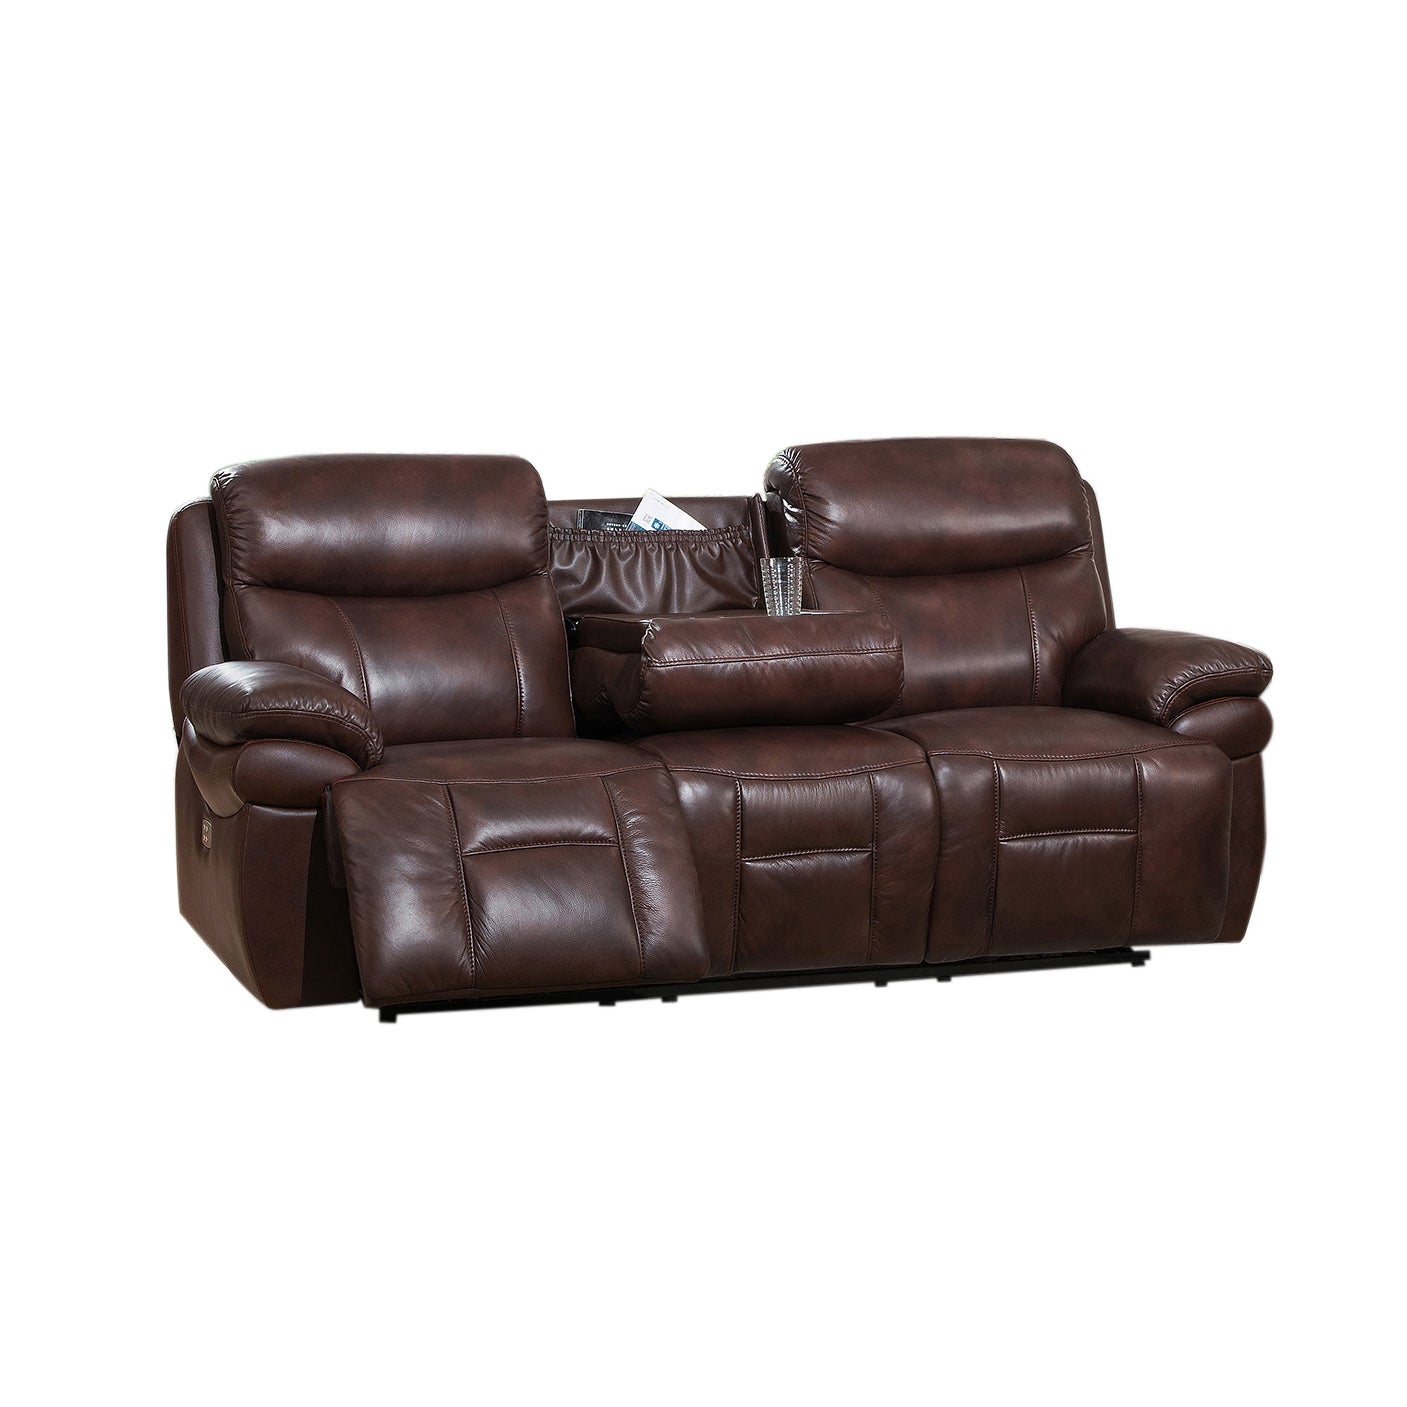 burgundy sofa reclining recliner italian itm dark with loveseat lexington ebay set detail and leather abbyson